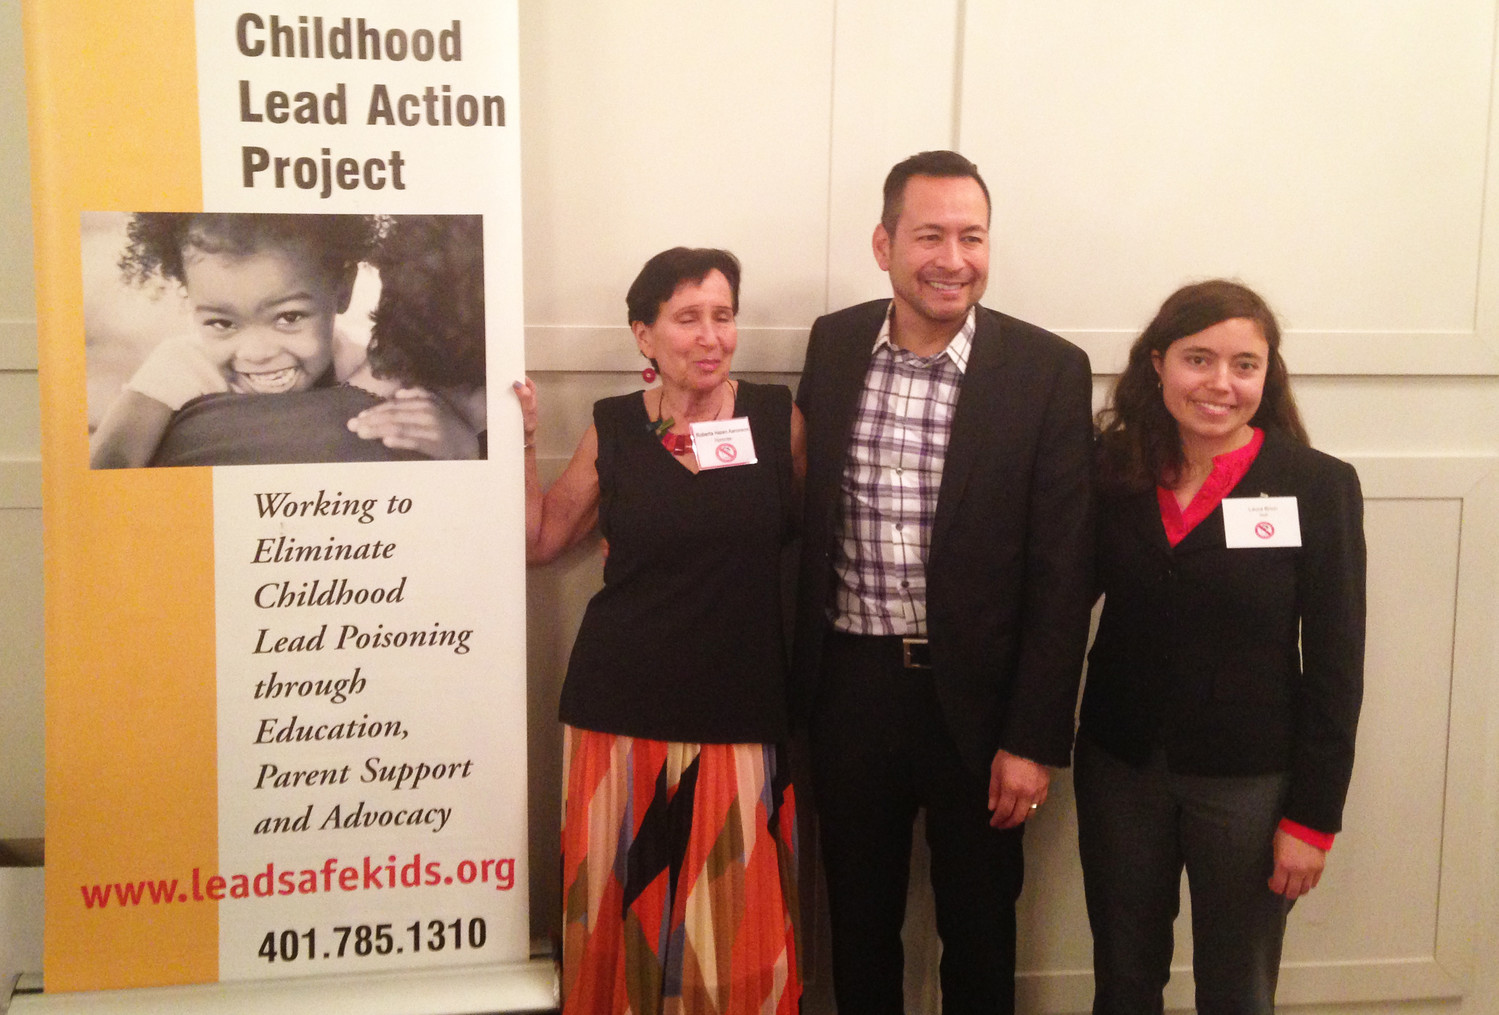 Roberta Hazen Aarondon, left, Mario Hilario, and Laura Brion, at the 25th anniversary of the Childhood Lead Action Project.